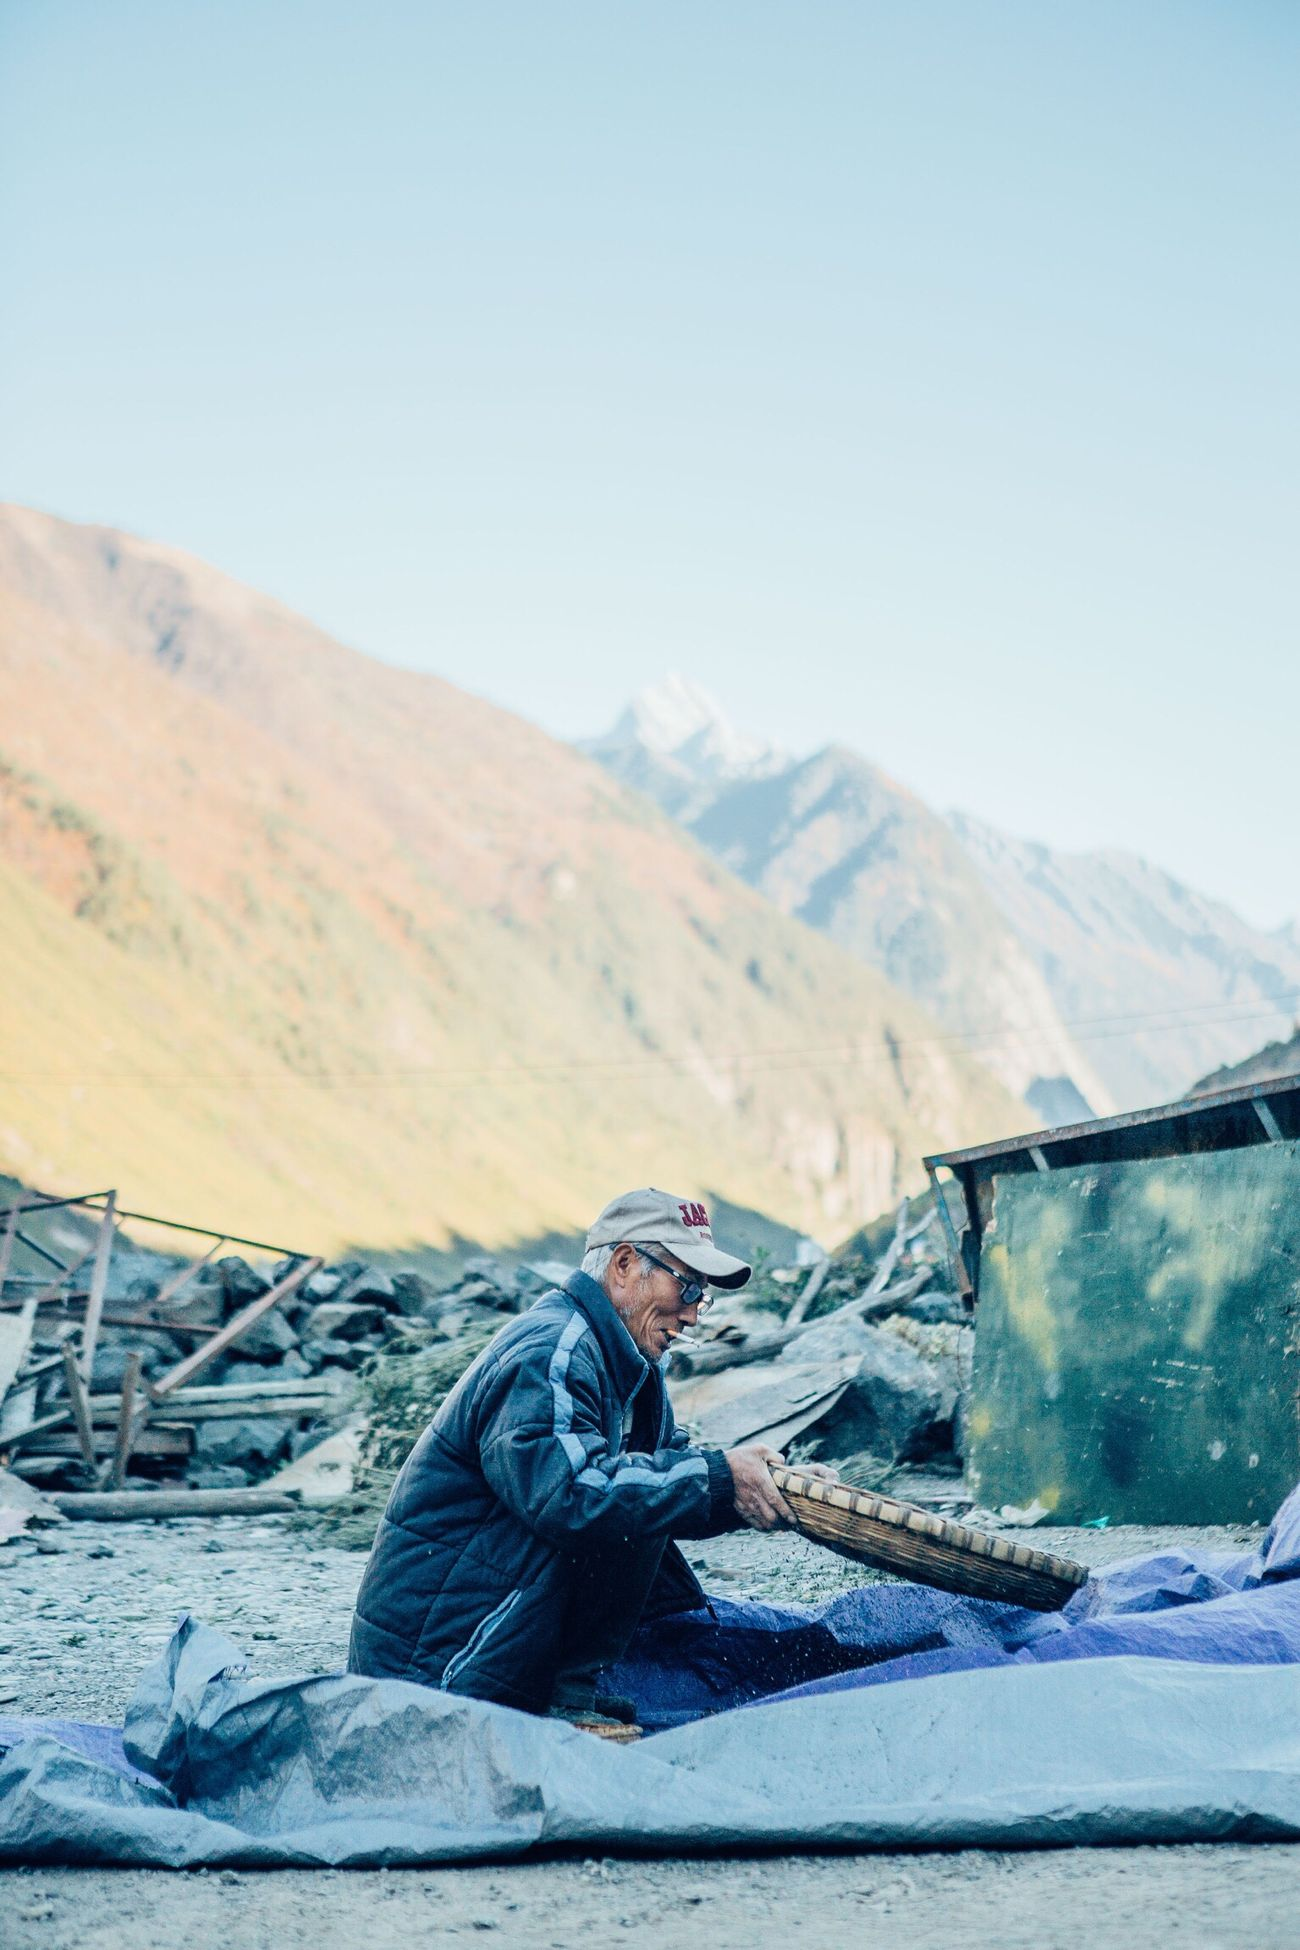 China Mountain Worker Work Tourism Outdoors Documentary Travel Vscocam Enjoyment Eye4photography  VSCO Travel Photography EyeEm Best Shots The Week Of Eyeem Journey Travel Destinations Colours Men Streetphotography Nature Check This Out Redstartravel